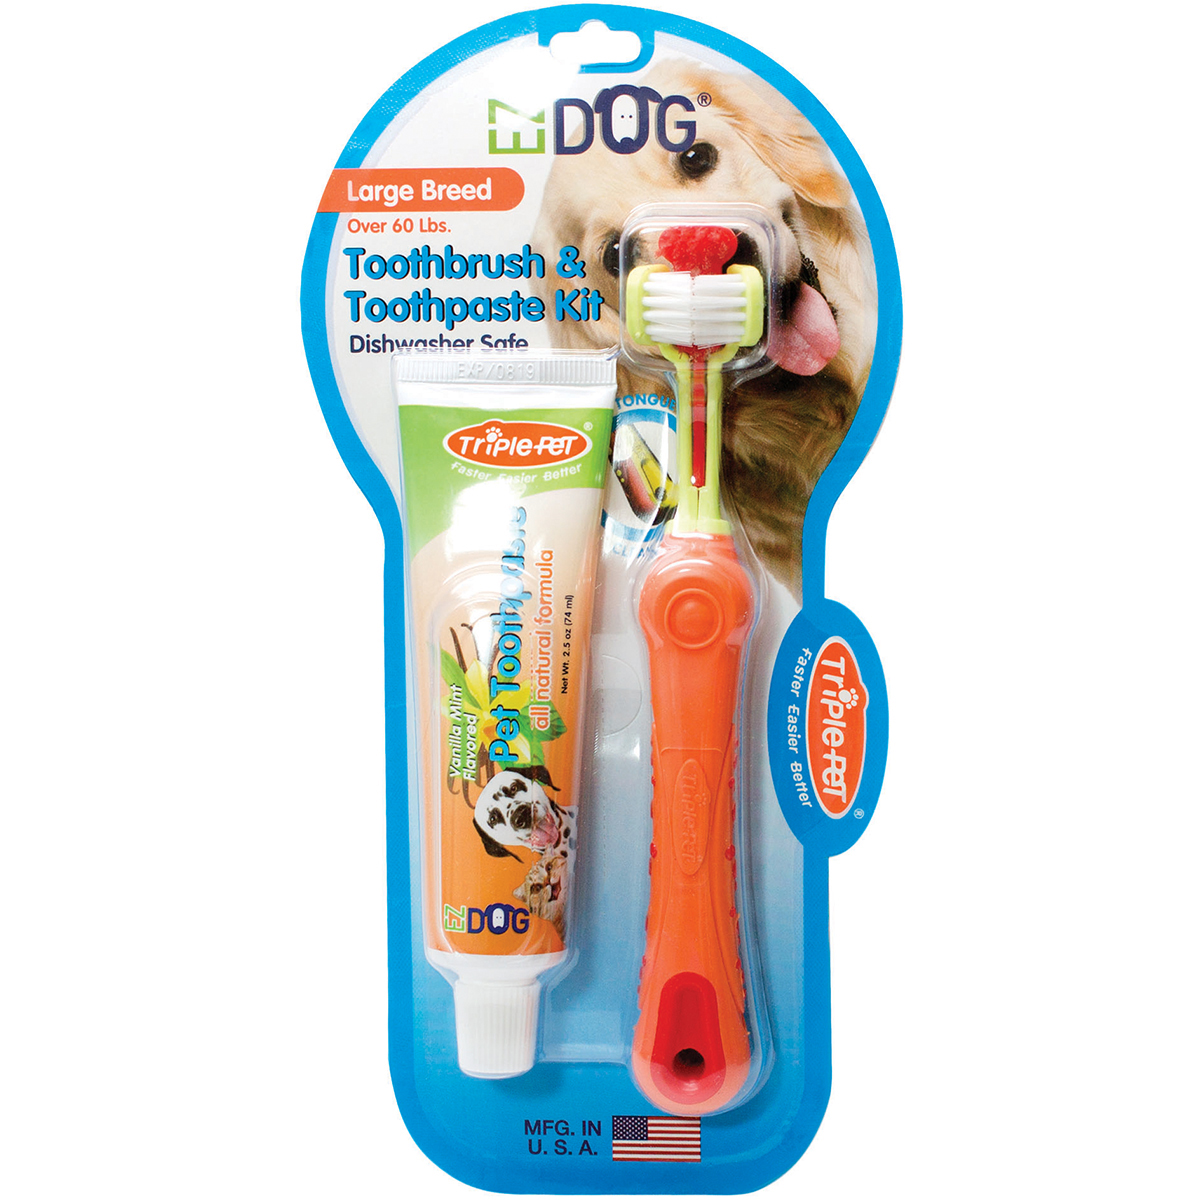 EZDOG Toothbrush and Toothpaste Kit for Large Breed Dogs